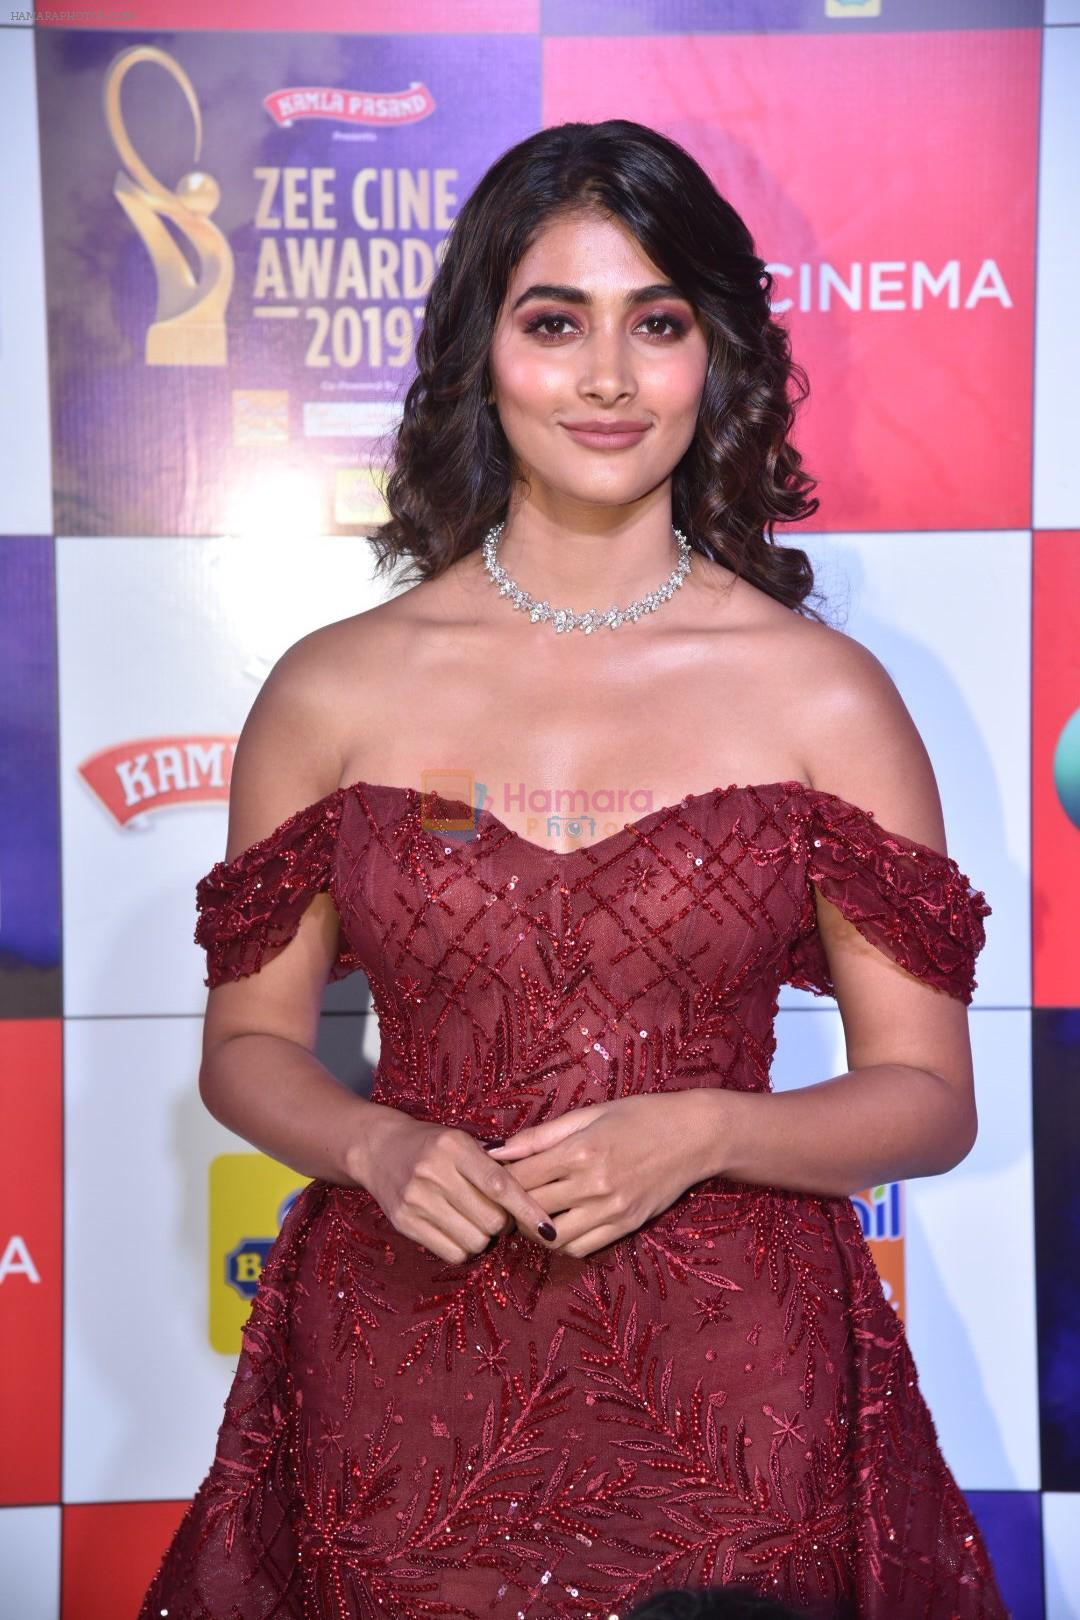 Pooja Hegde at Zee cine awards red carpet on 19th March 2019